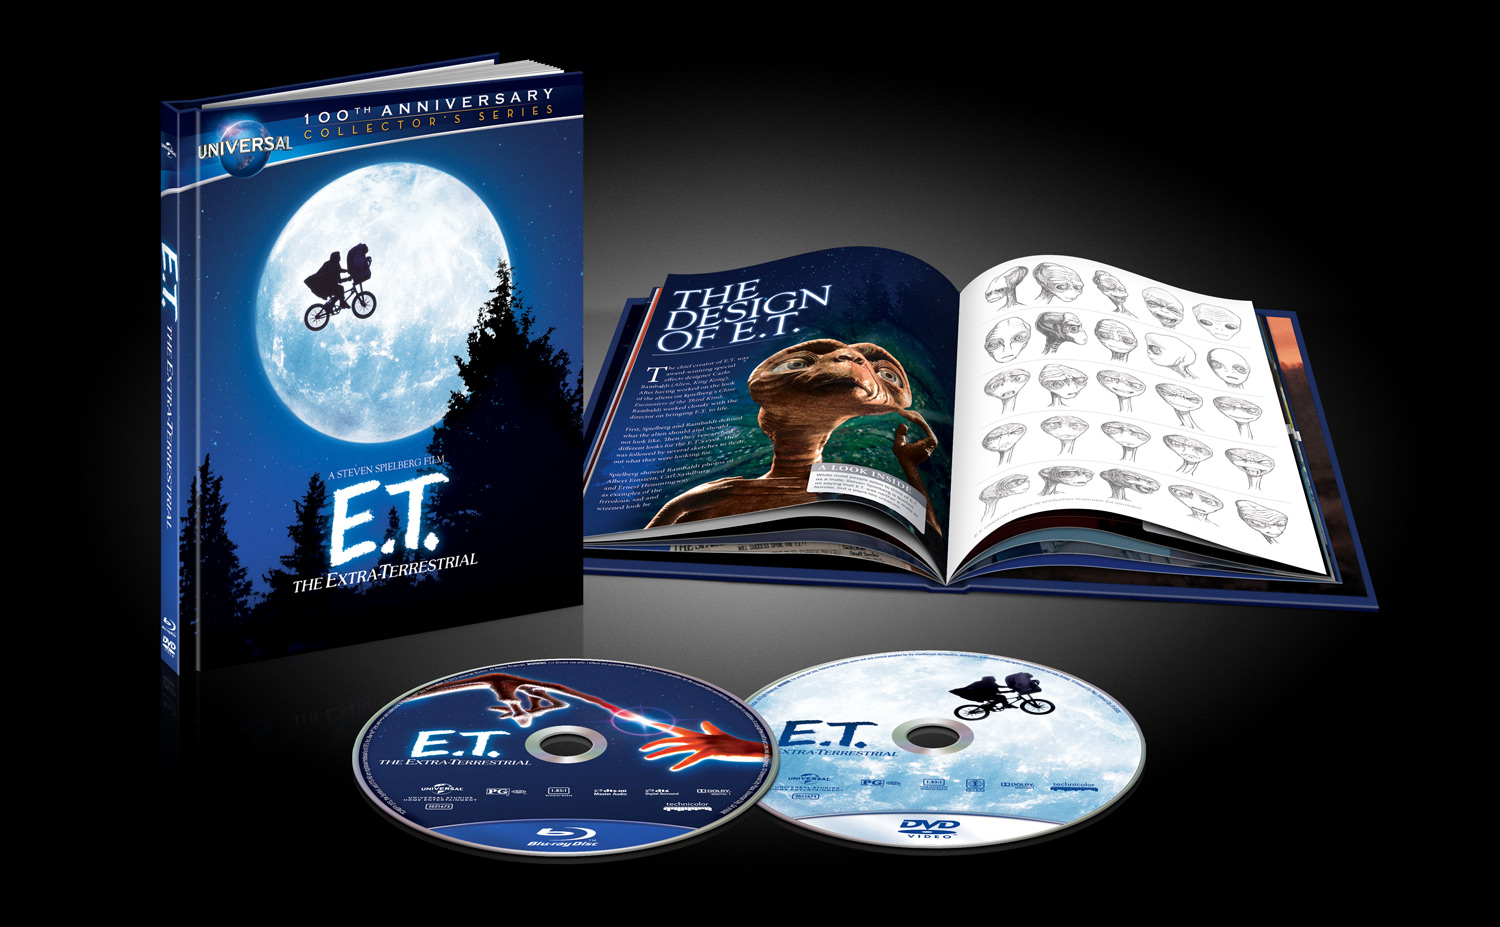 ET_30thAnniversary_Collection_02.jpg